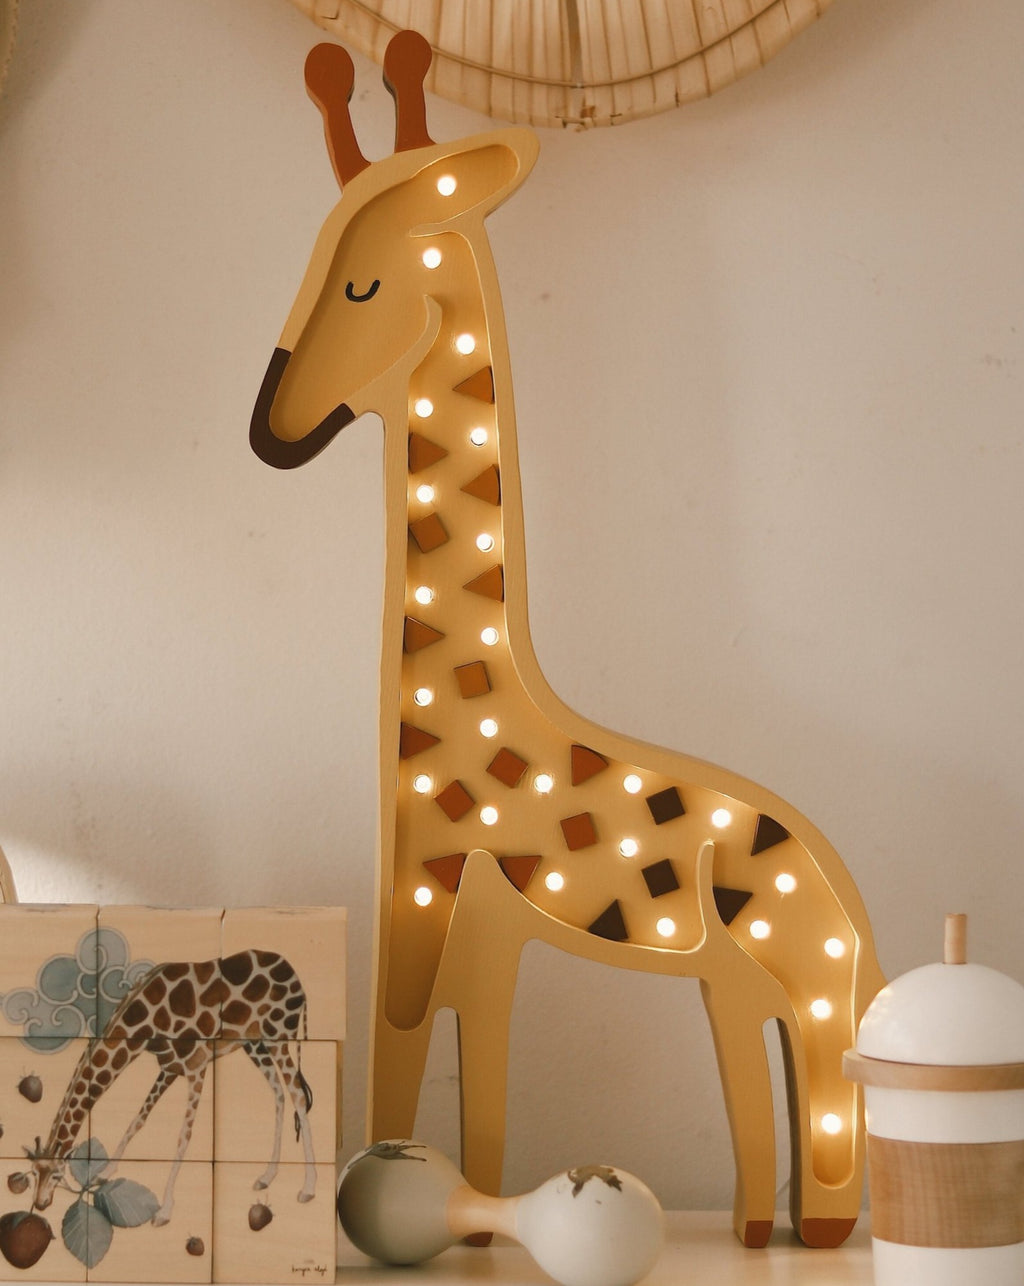 Wooden Giraffe Lamp